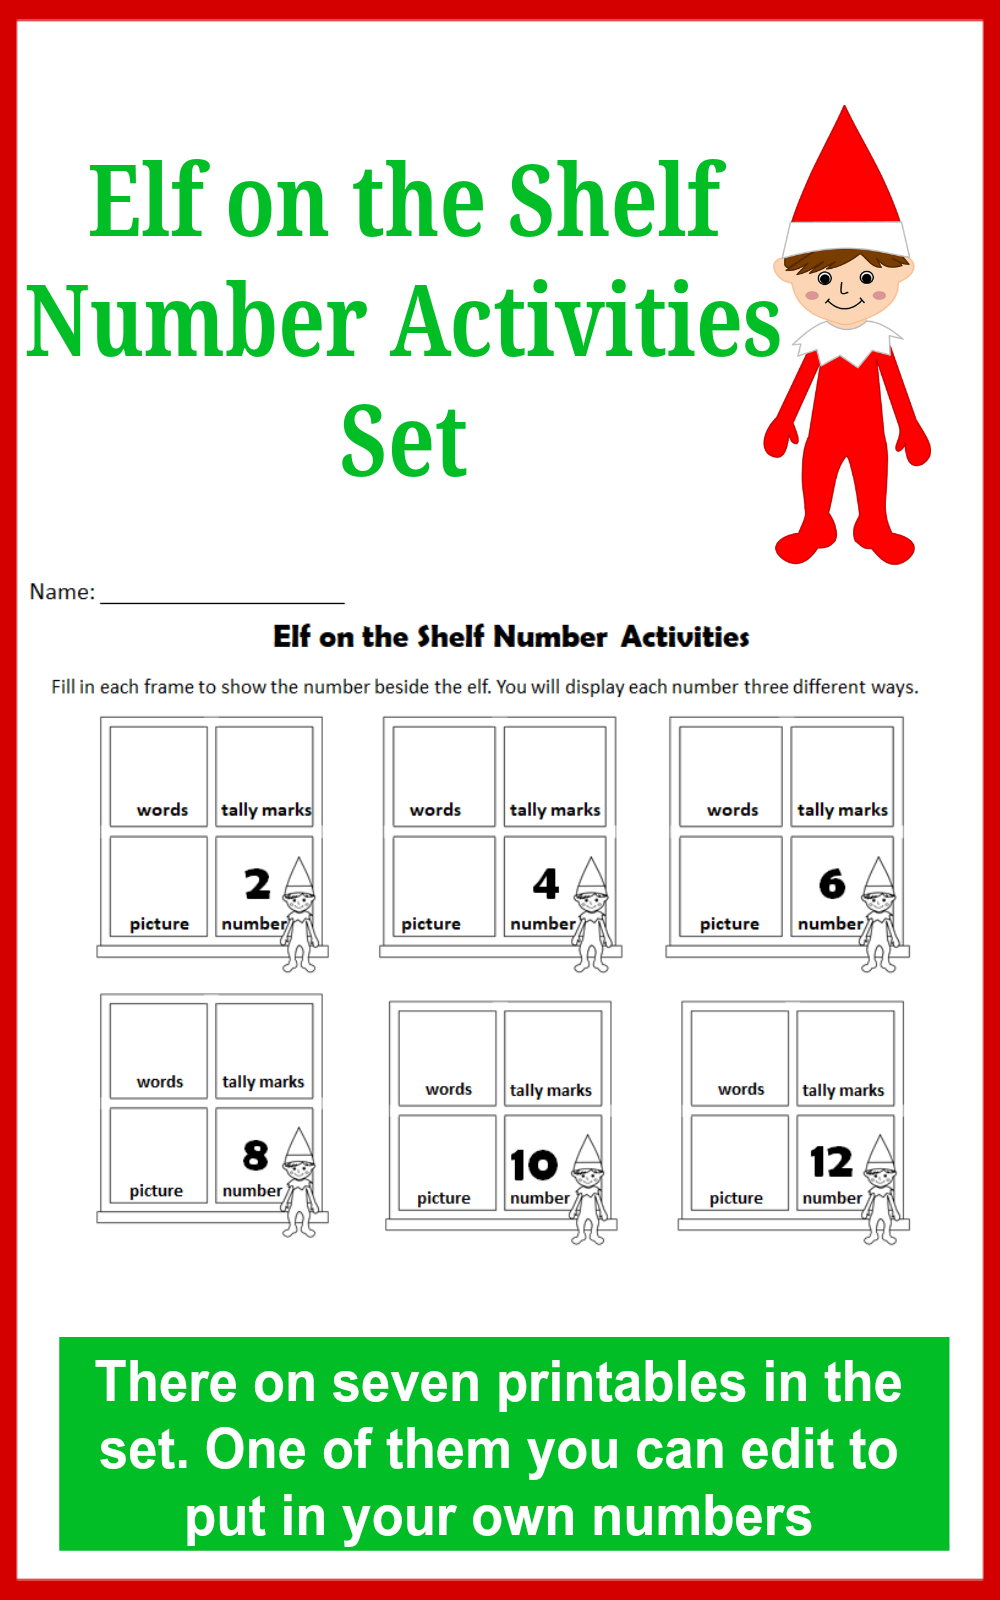 Elf on the Shelf Number Activities Set for Kids - This set explores even numbers, odd numbers, and the numbers 1-24. There is one editable printable in the set.